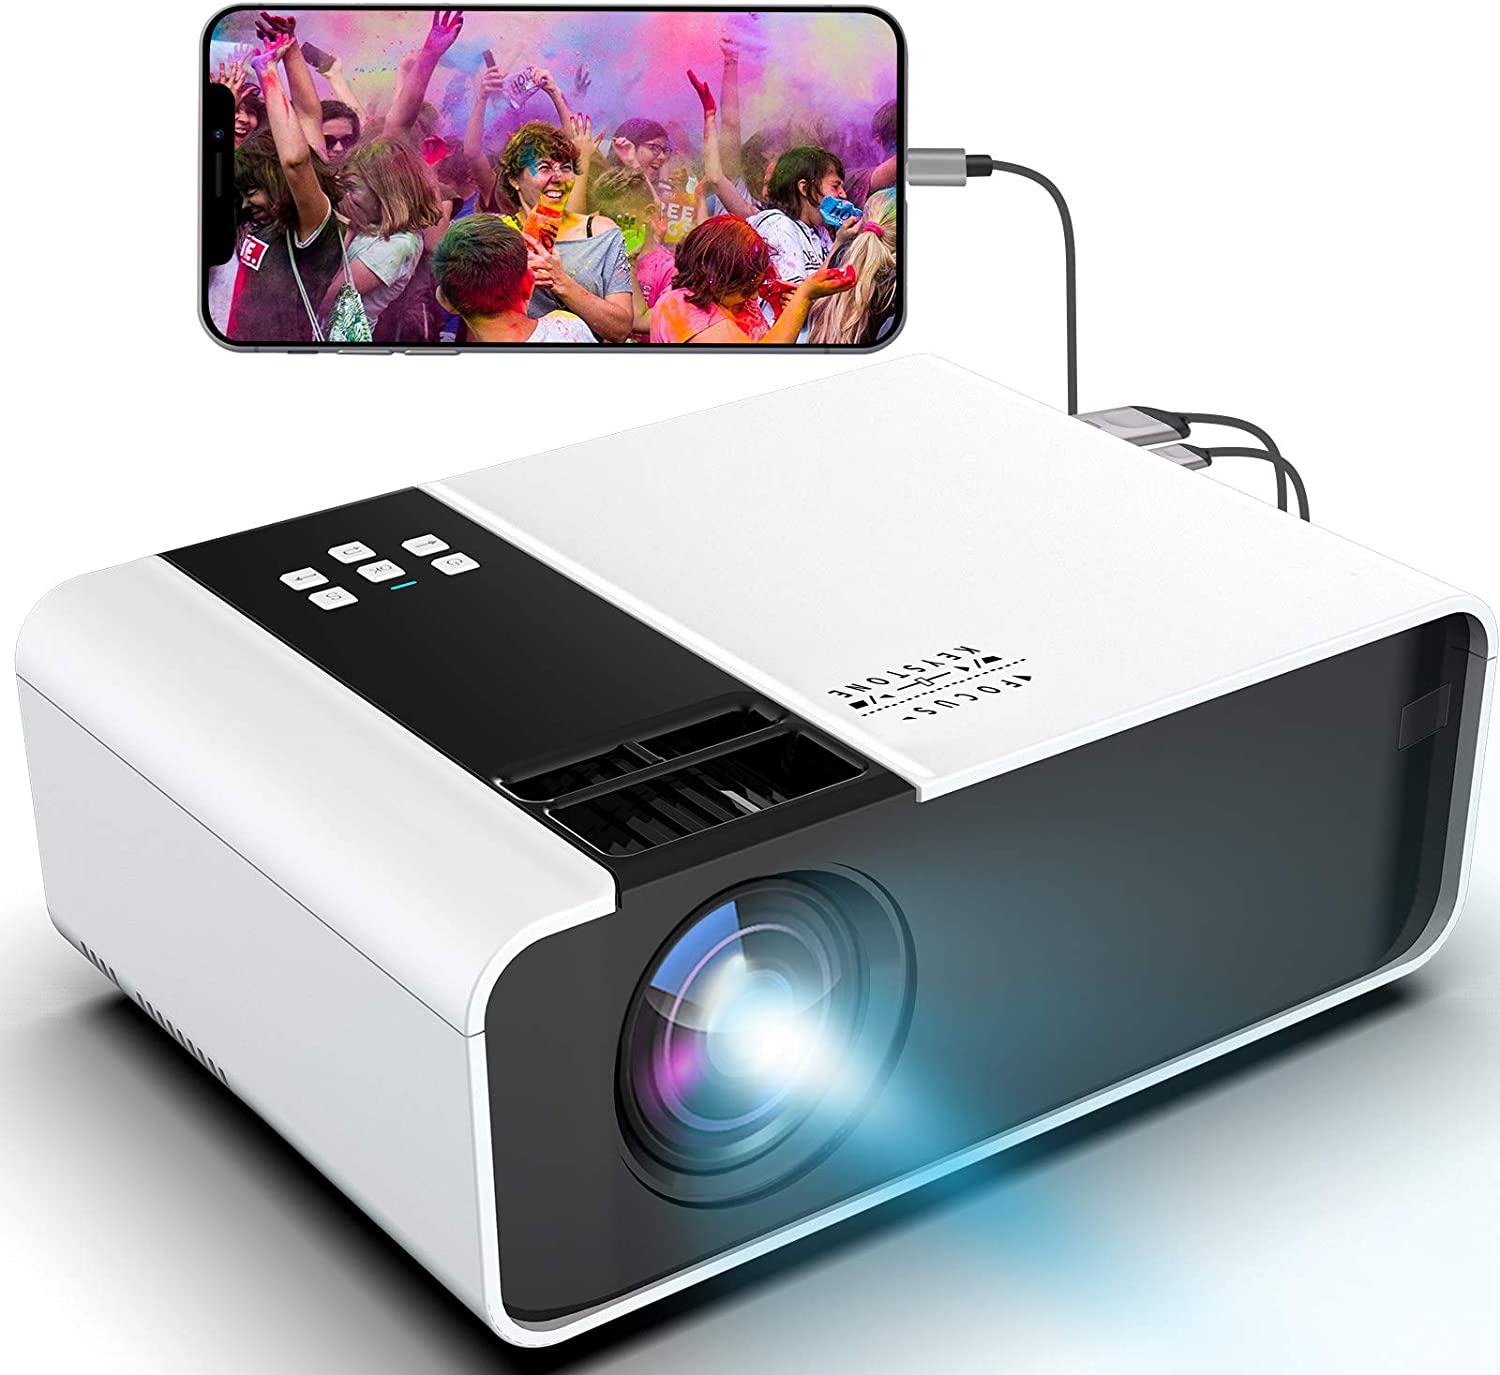 Mini Portable Movie Projector 1080P-Supported - Jimwey Full HD Outdoor Video Projector, with 50000 Hrs LED Lamp Life, Compatible with TV Stick, PS4, HDMI, USB, AV for Home Cinema [2021 Upgraded]